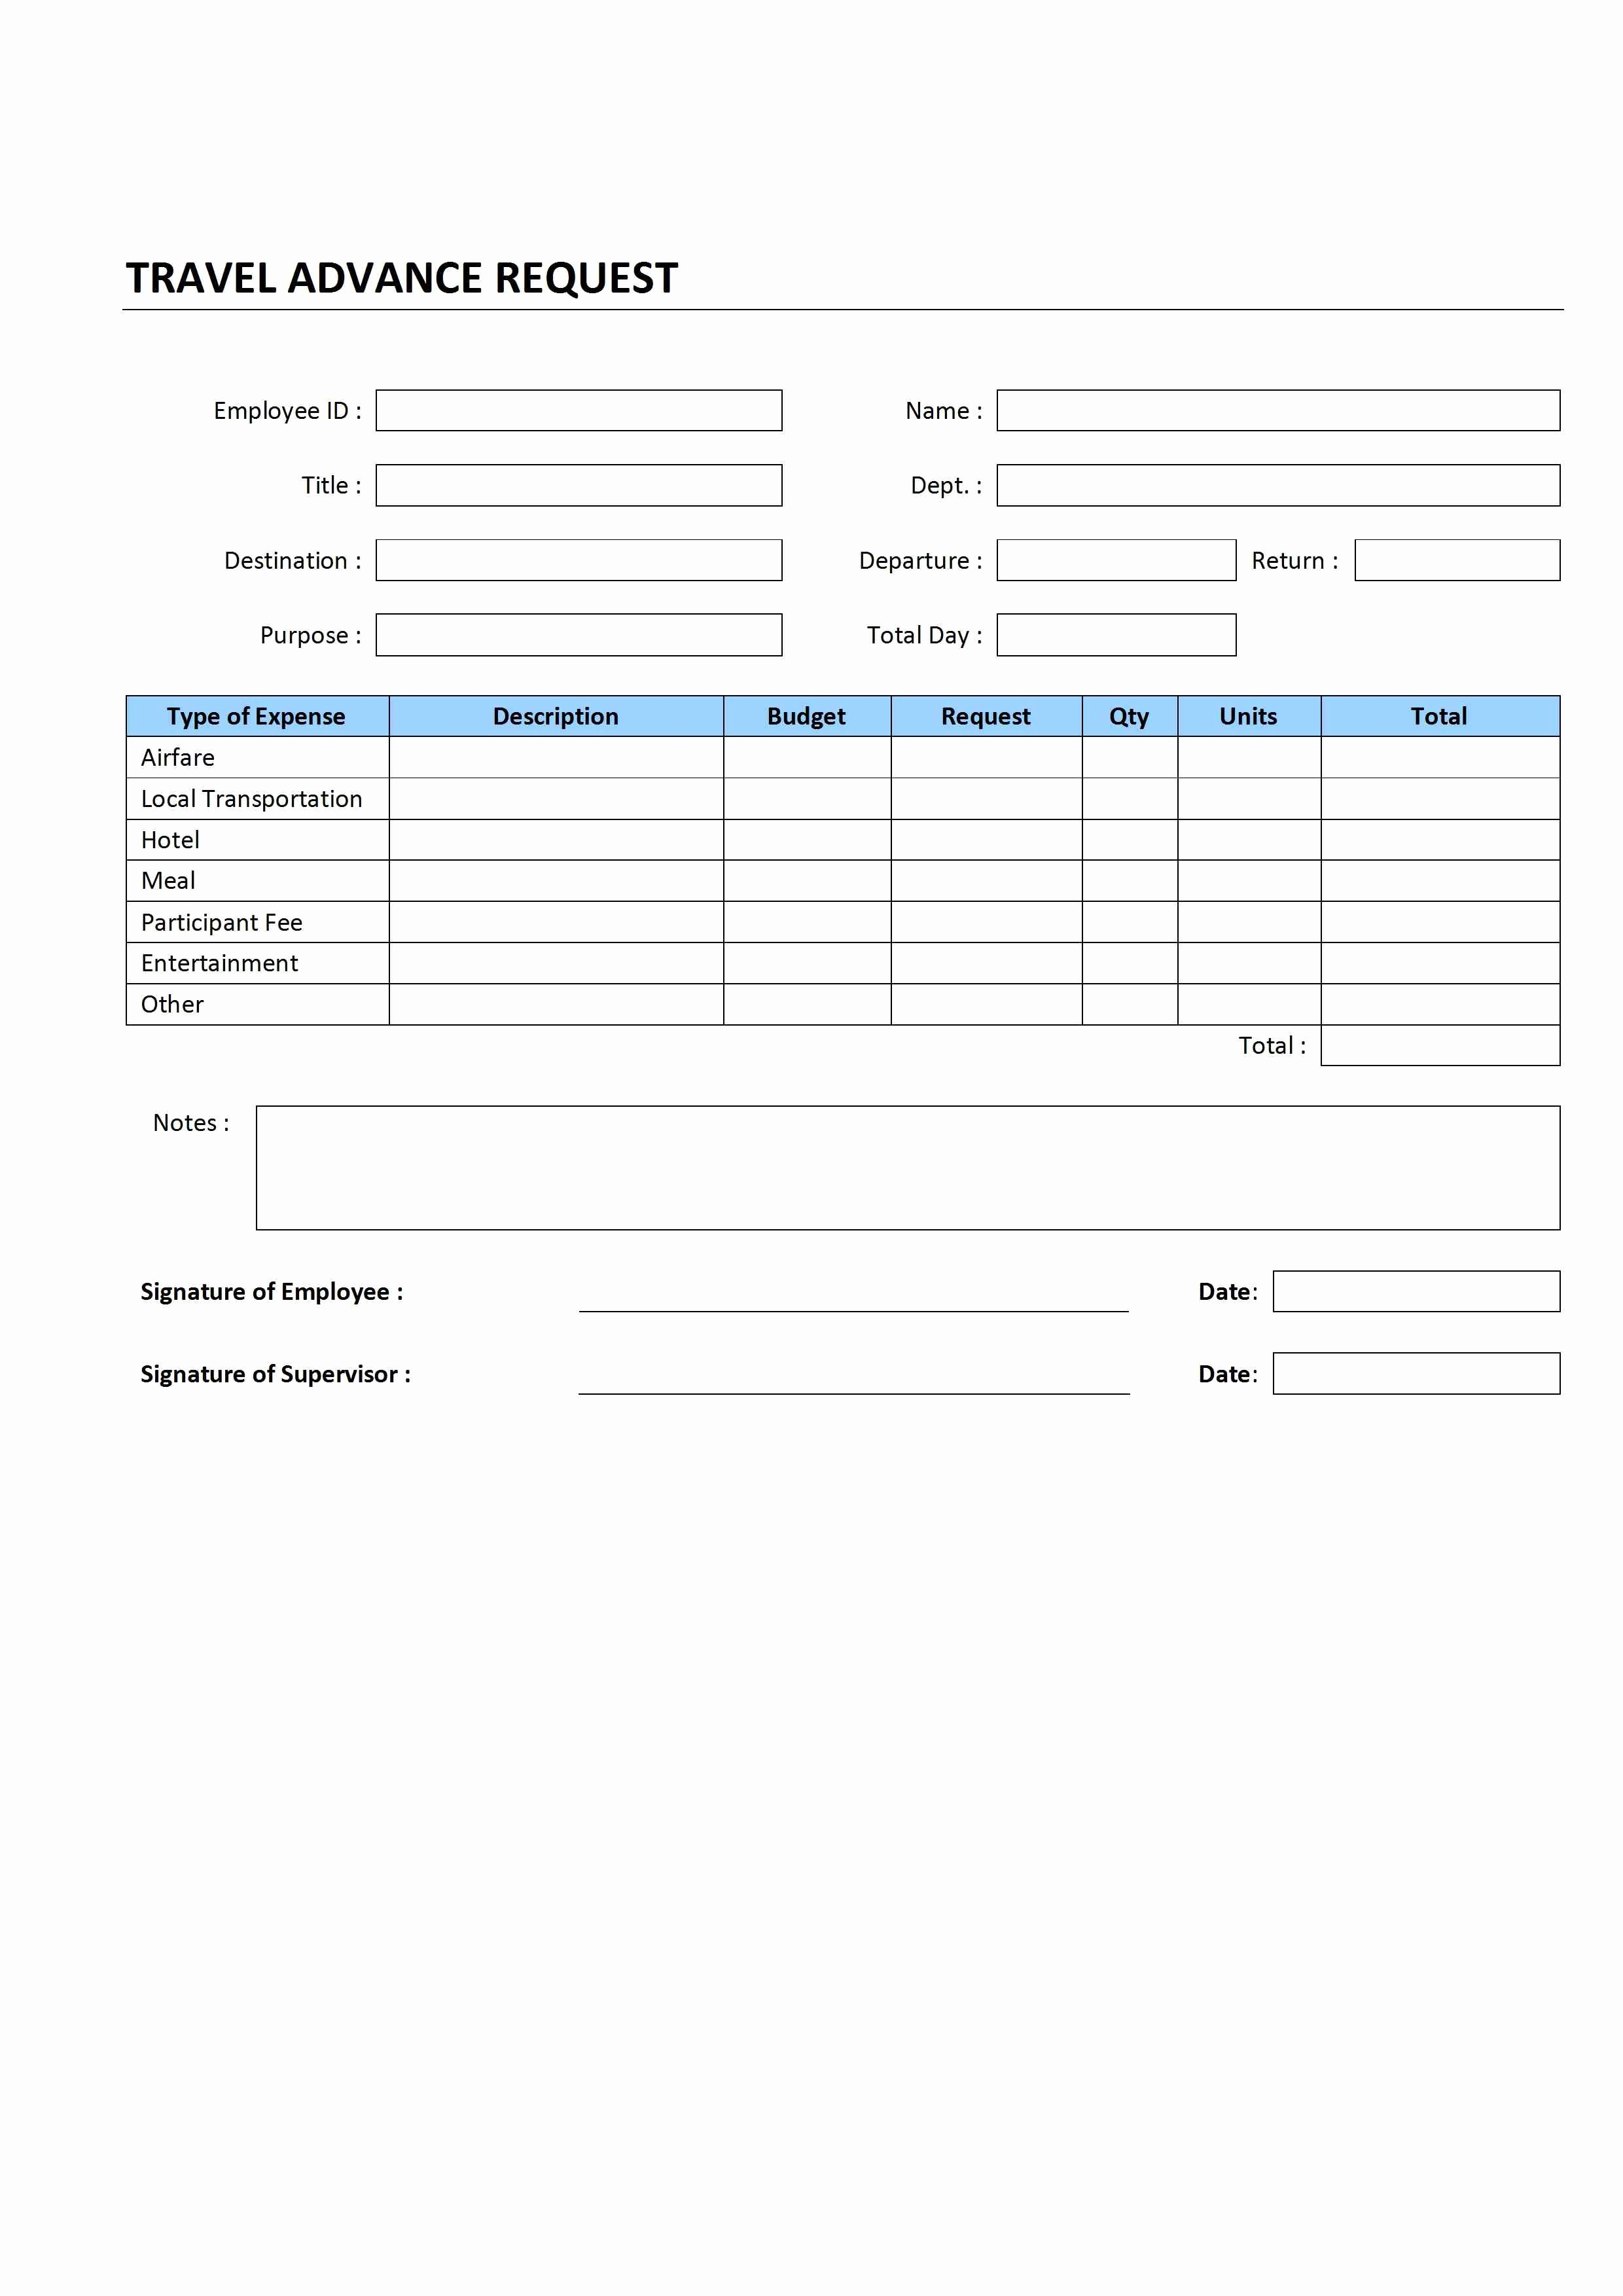 Travel Request form Template Excel New Travel Advance Request